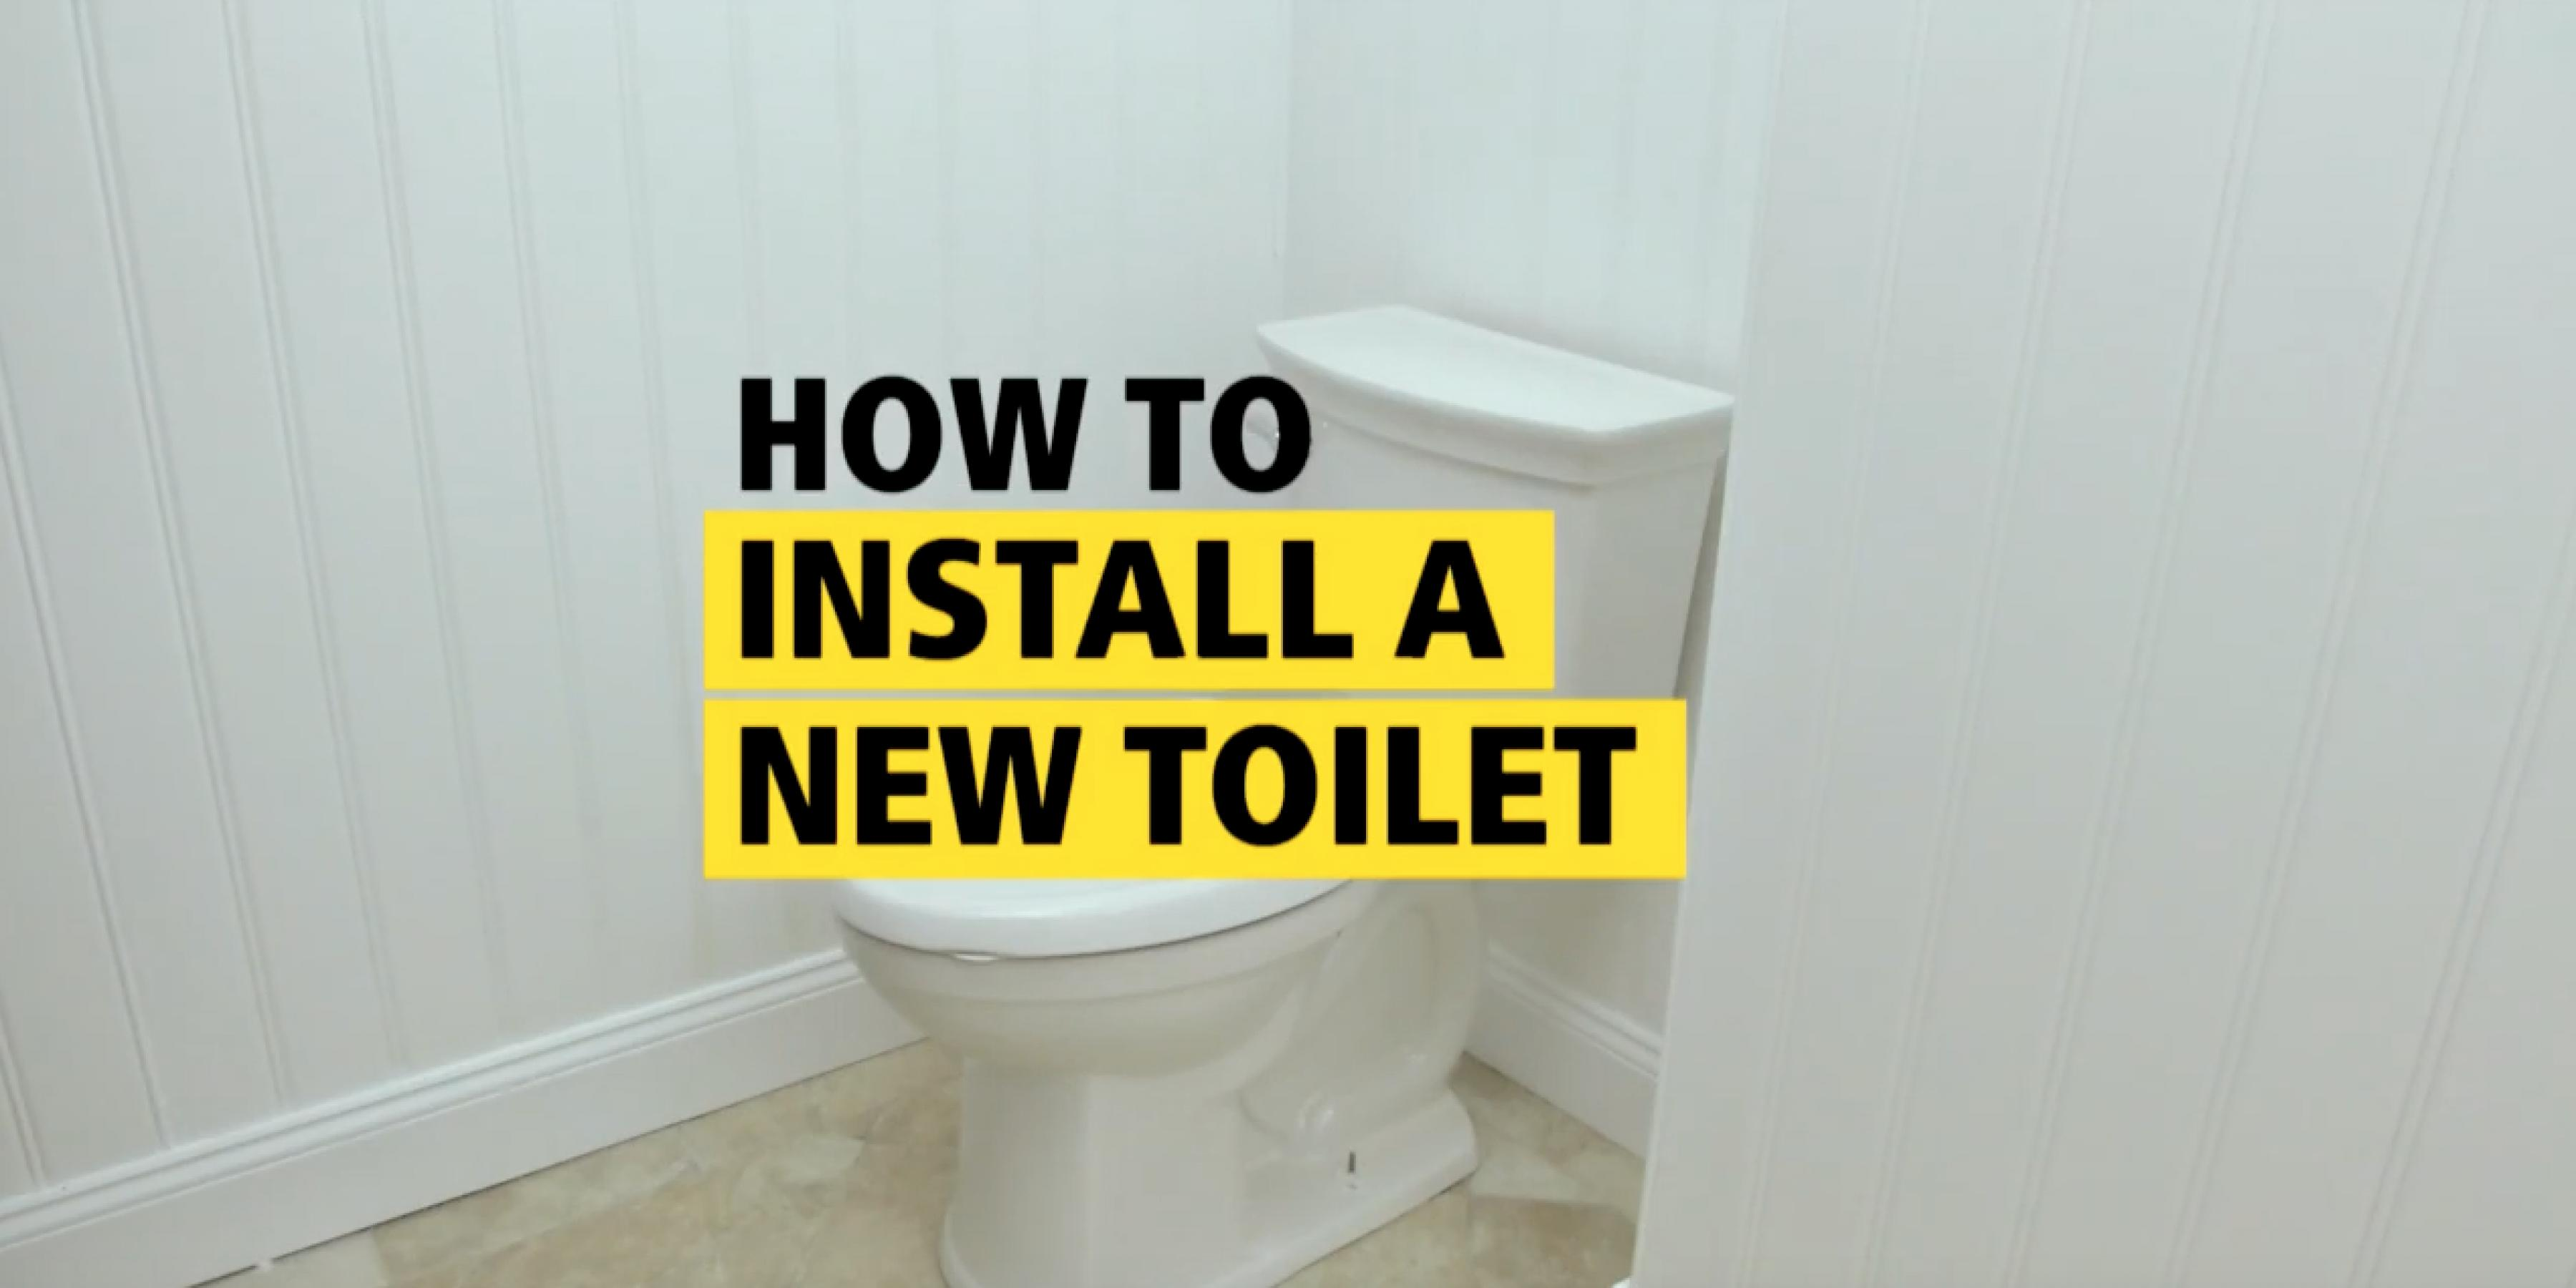 How To Install A New Toilet - STANLEY Pro Project Guides